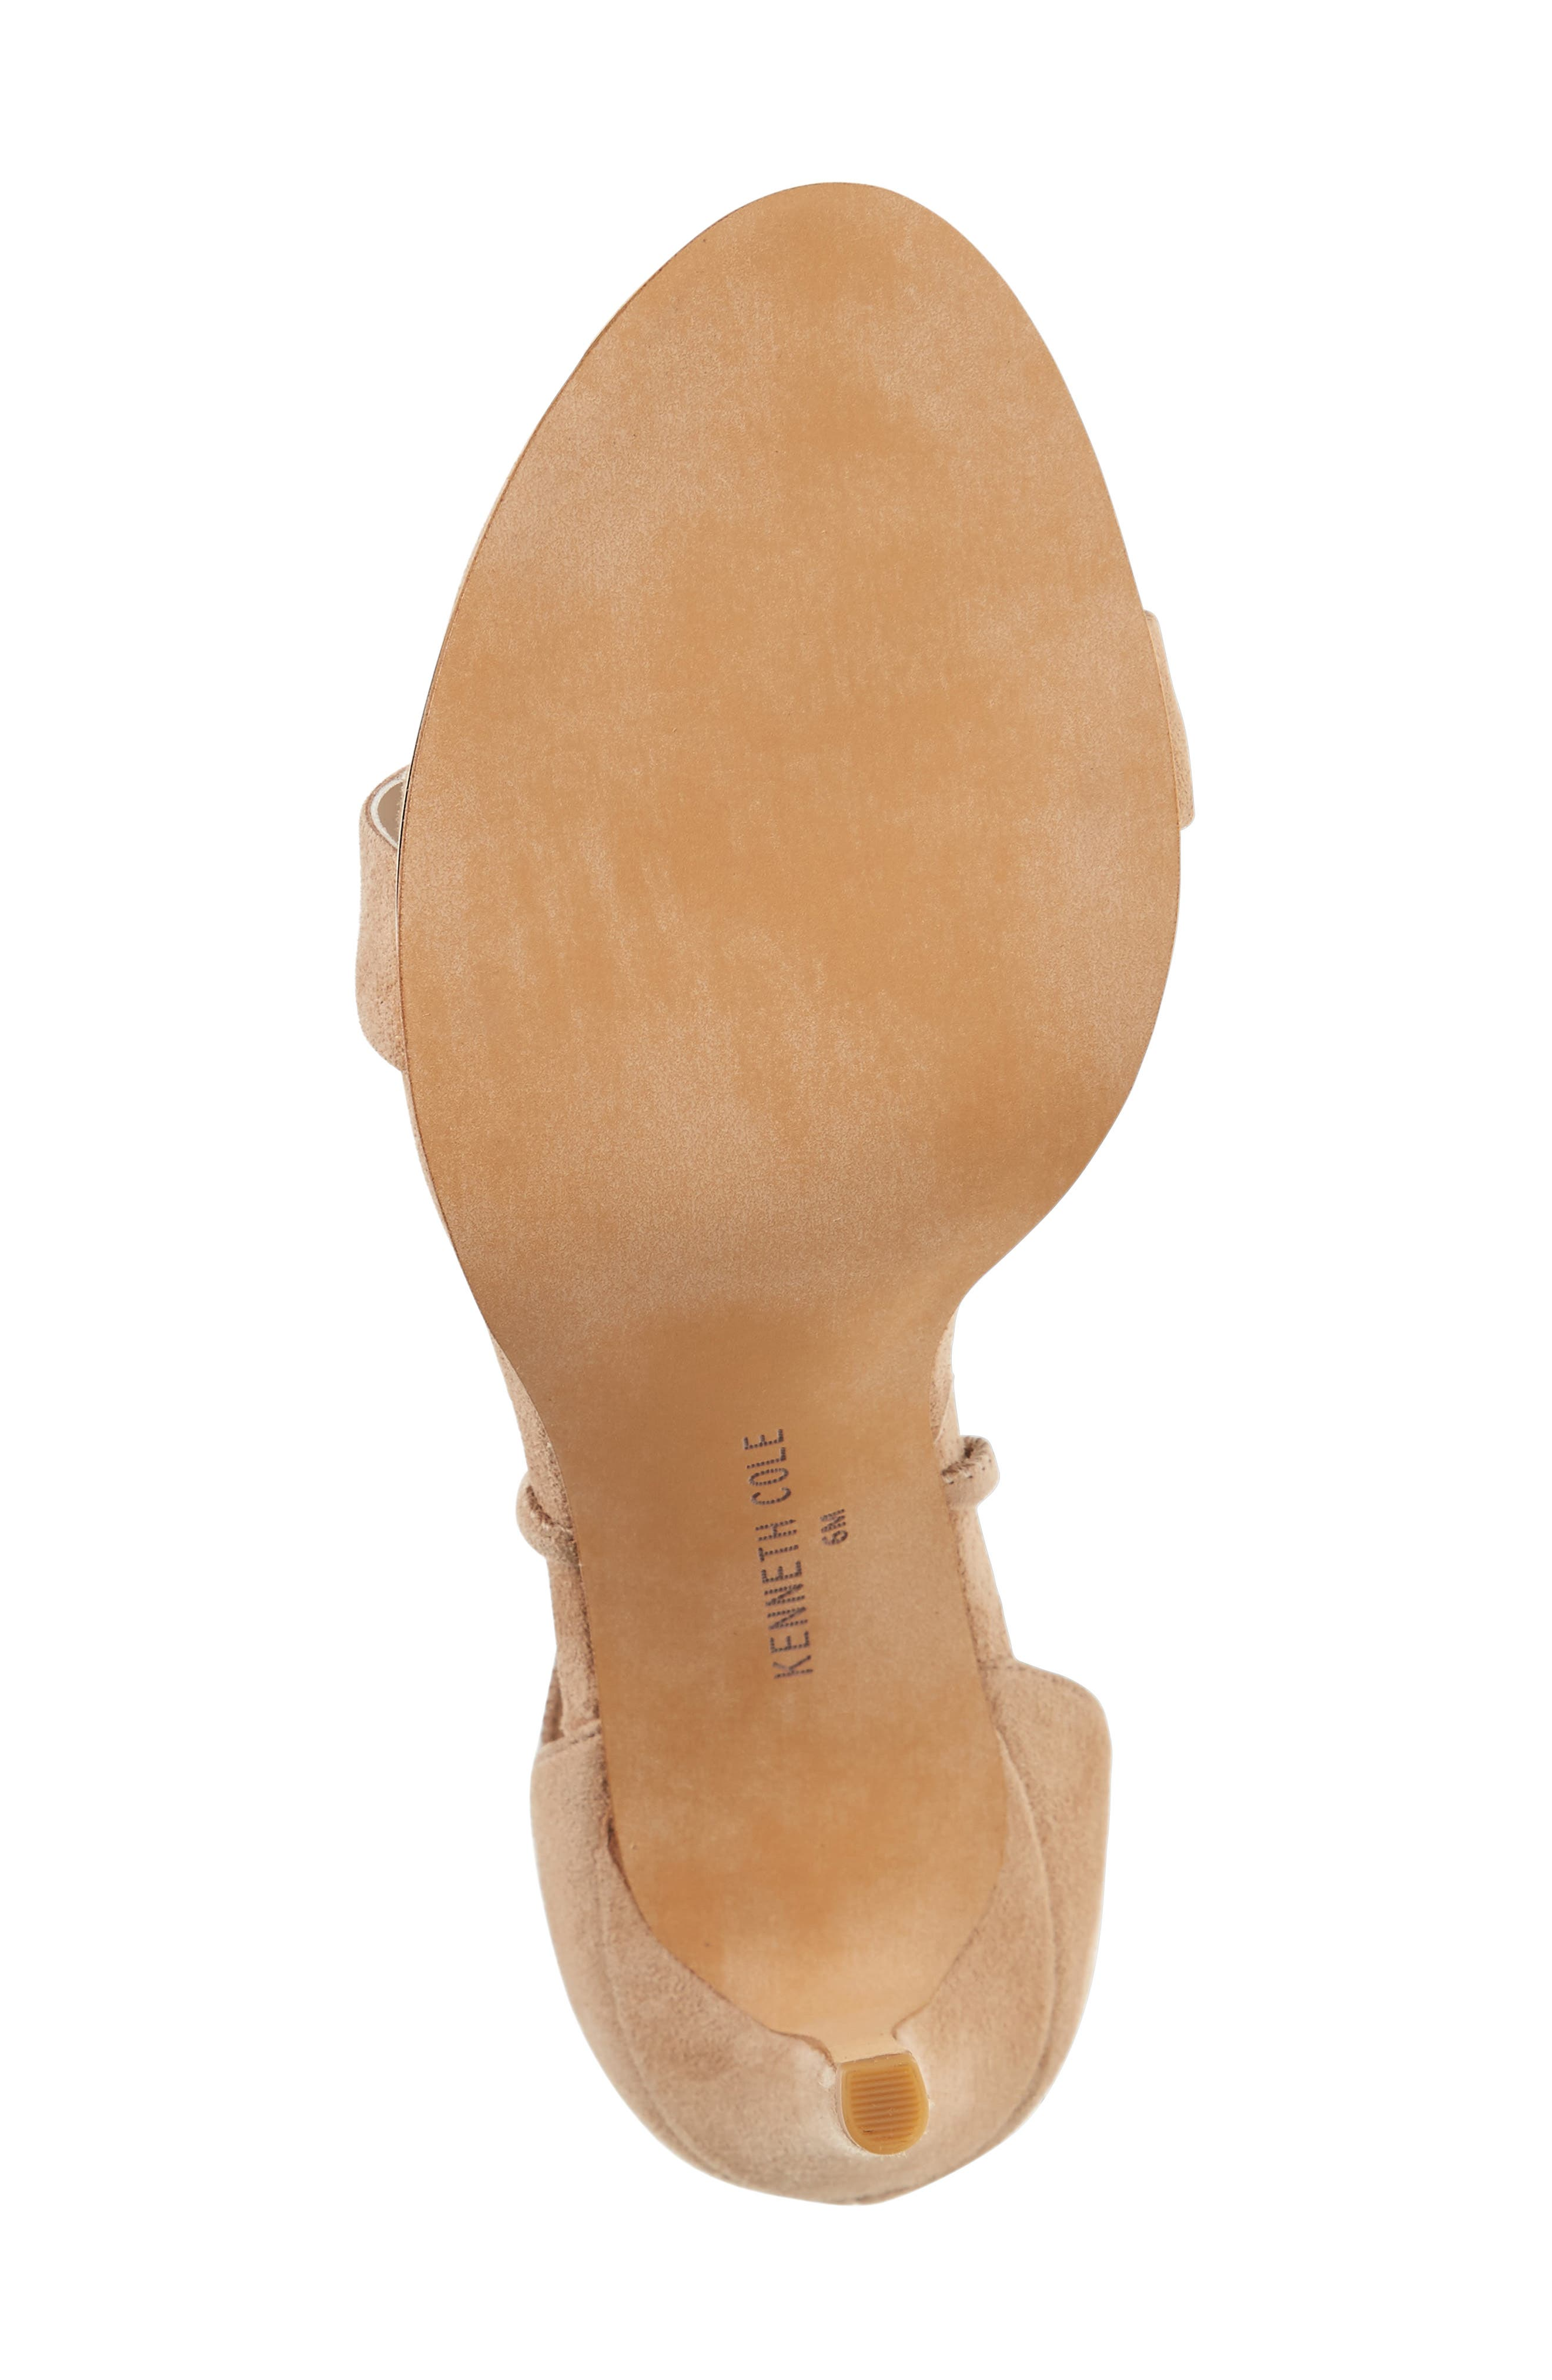 KENNETH COLE NEW YORK, Berry Wraparound Sandal, Alternate thumbnail 4, color, ALMOND SUEDE